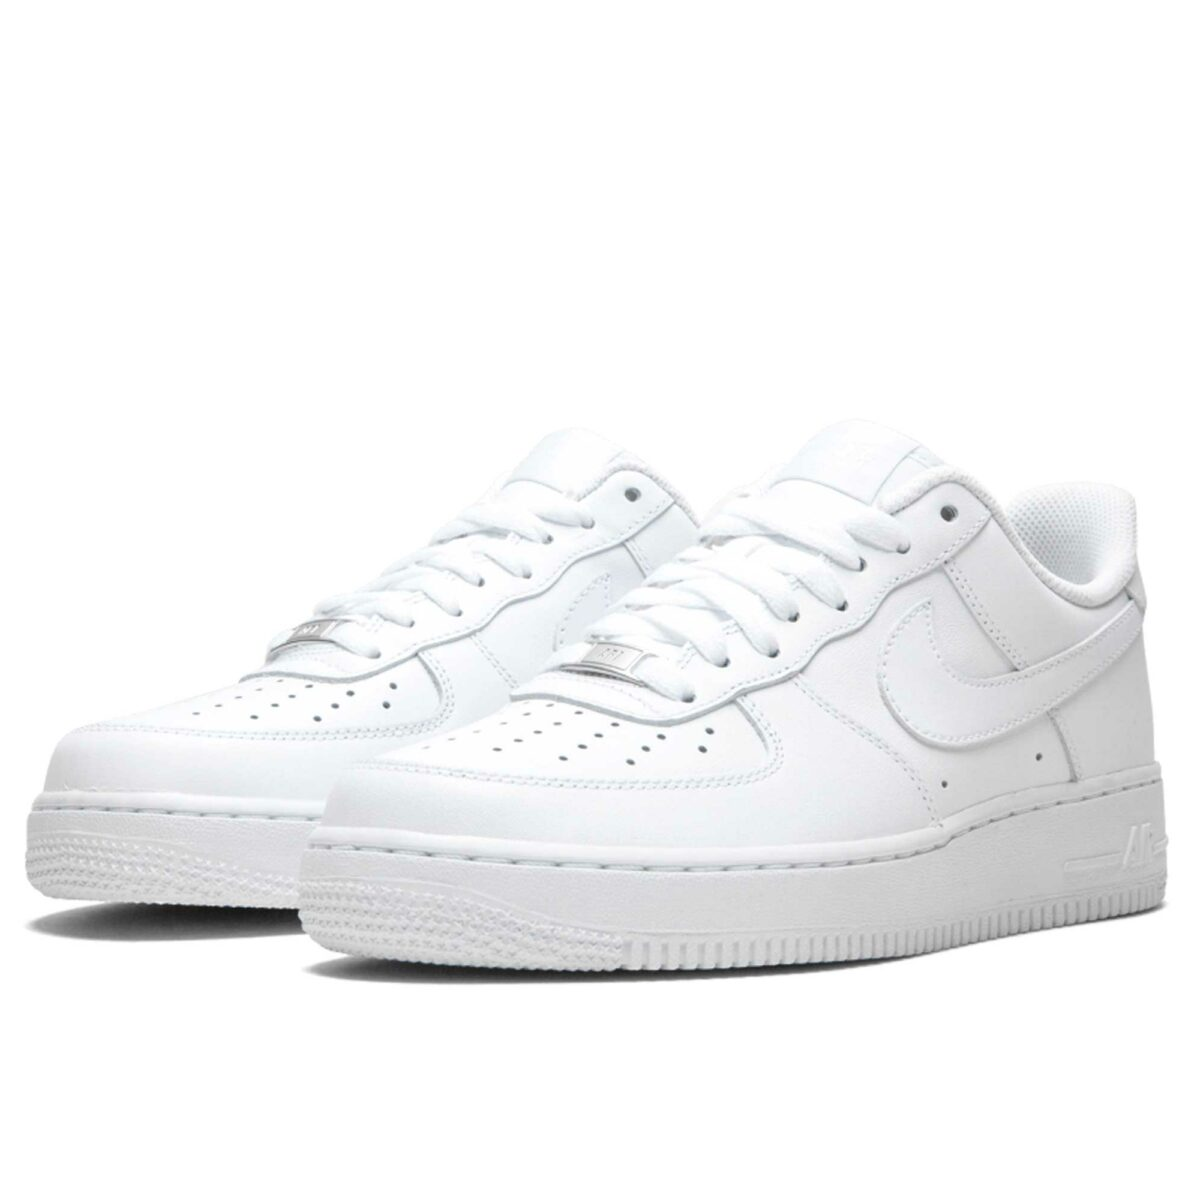 nike air force 1 '07 low white 315122_111 интернет магазин